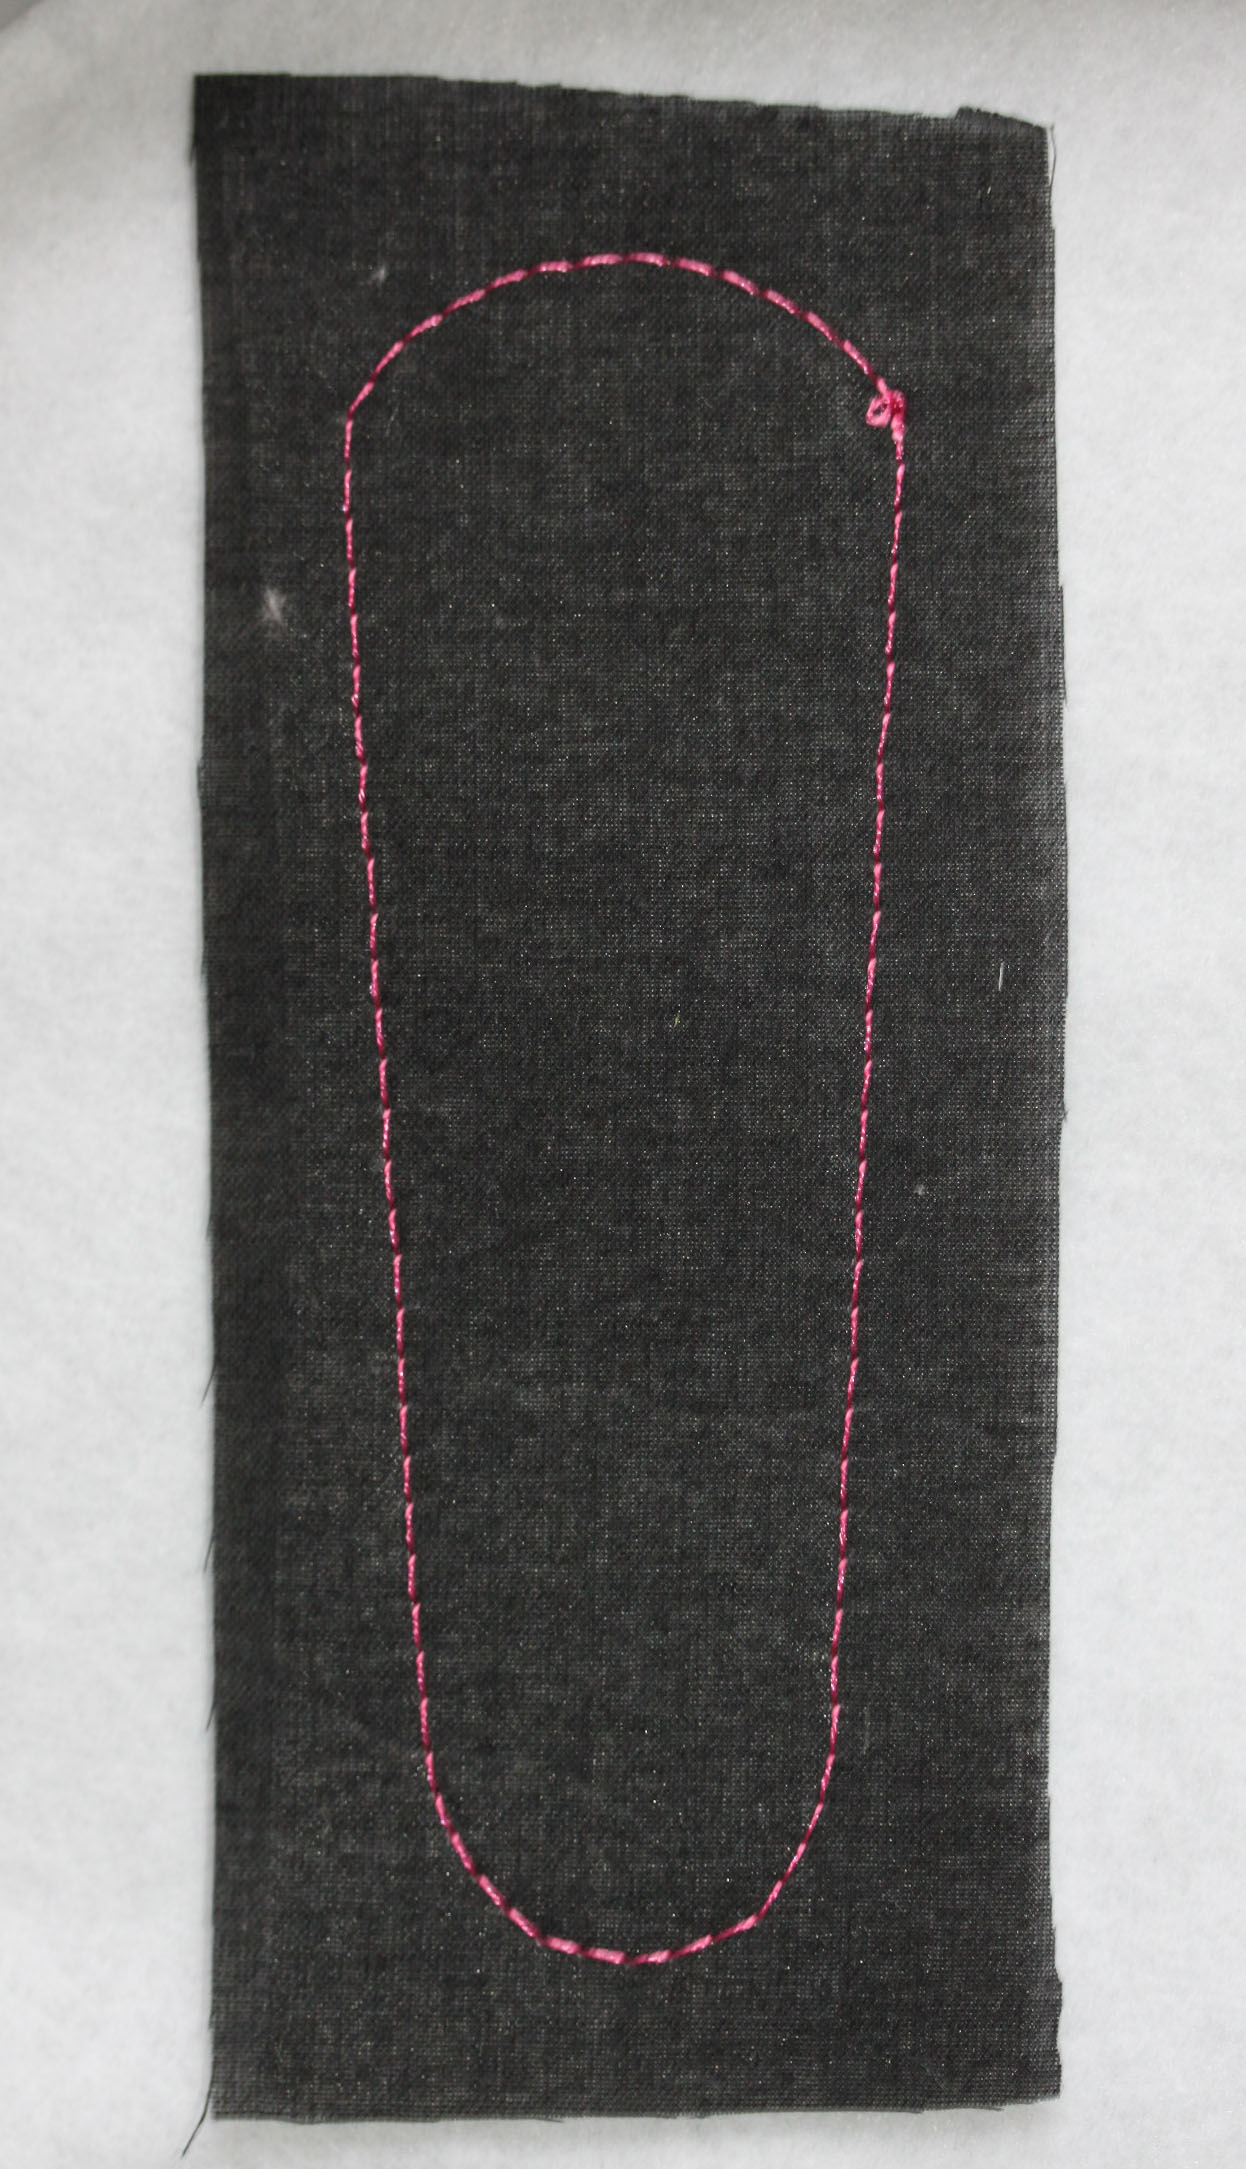 Black Fabric with Pink Outline Stitch